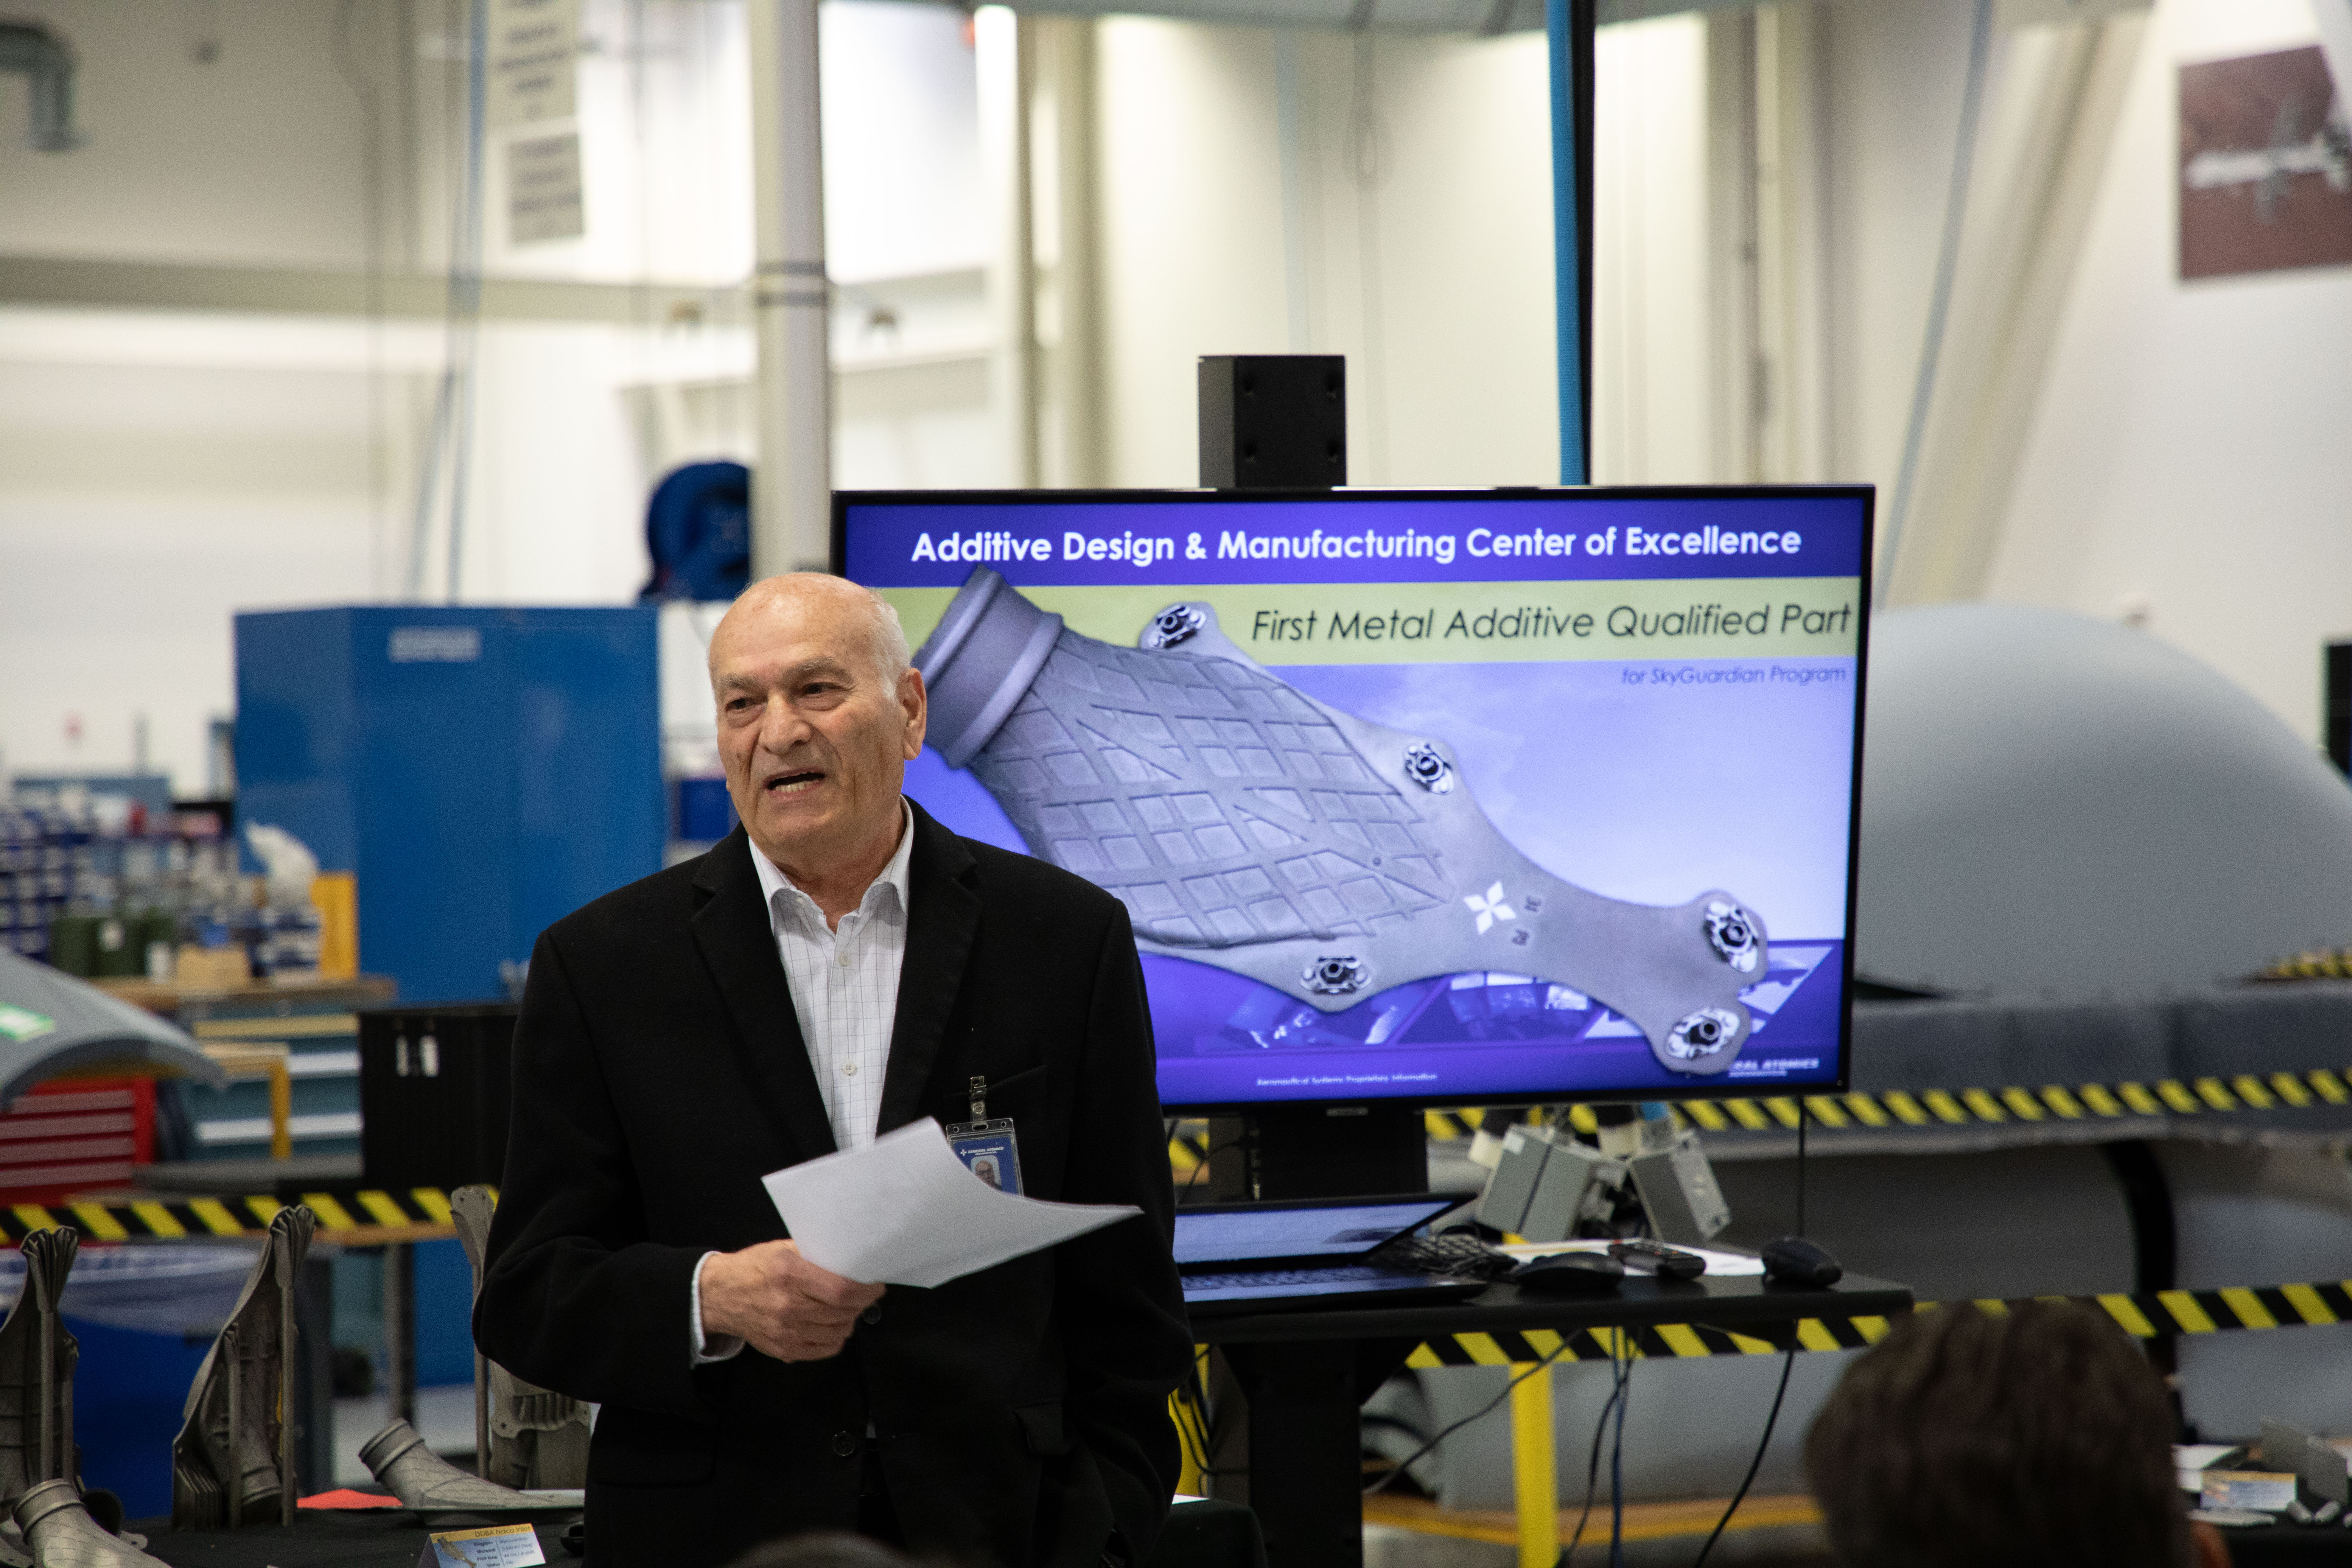 Elie Yehezkel, Senior Vice President of GA-ASI's Advanced Manufacturing Technologies attends an executive review in December 2019. Photo via GA-ASI.